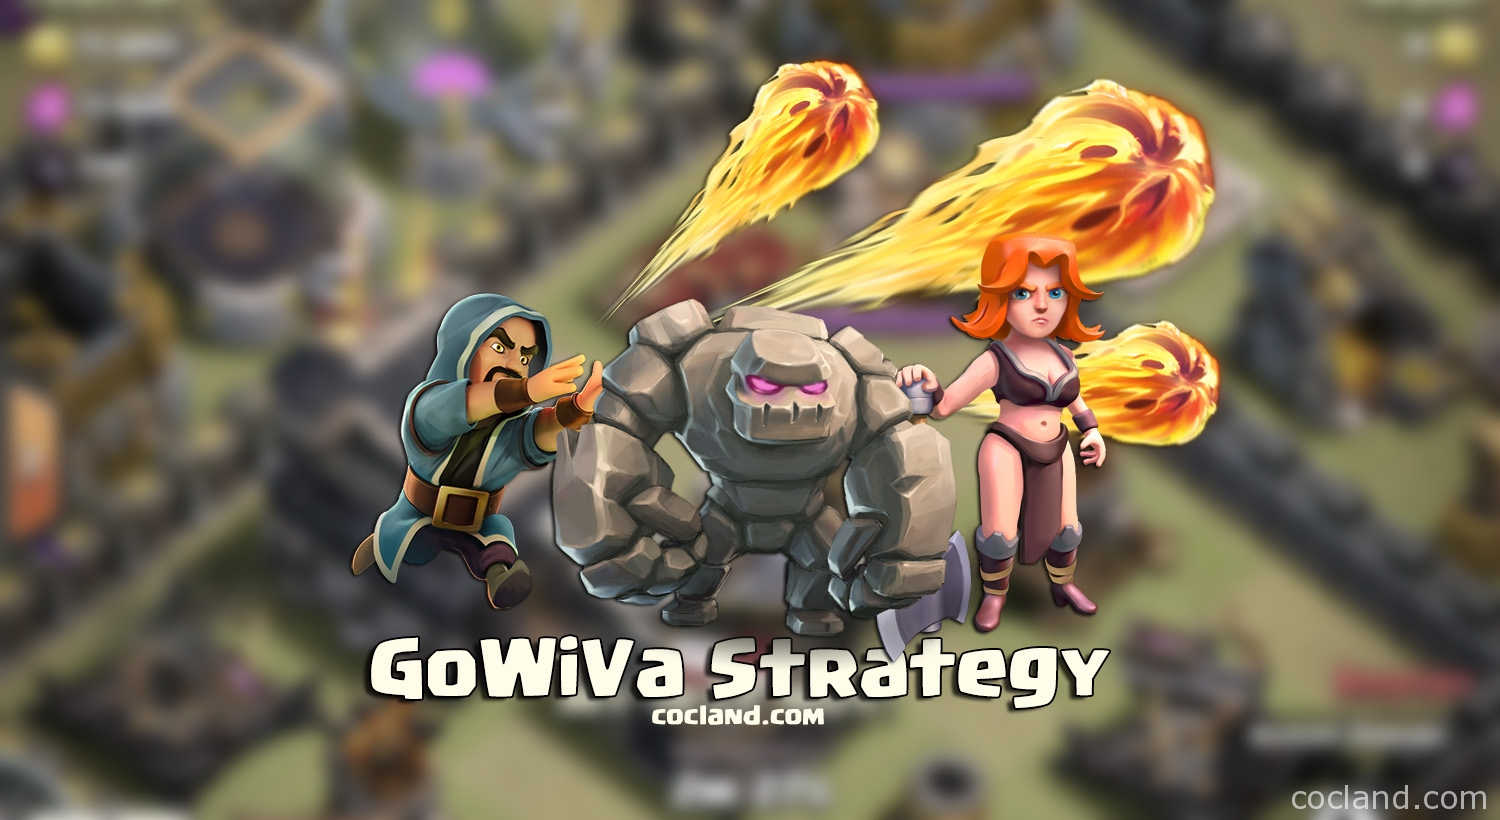 GoWiVa Attack Strategy